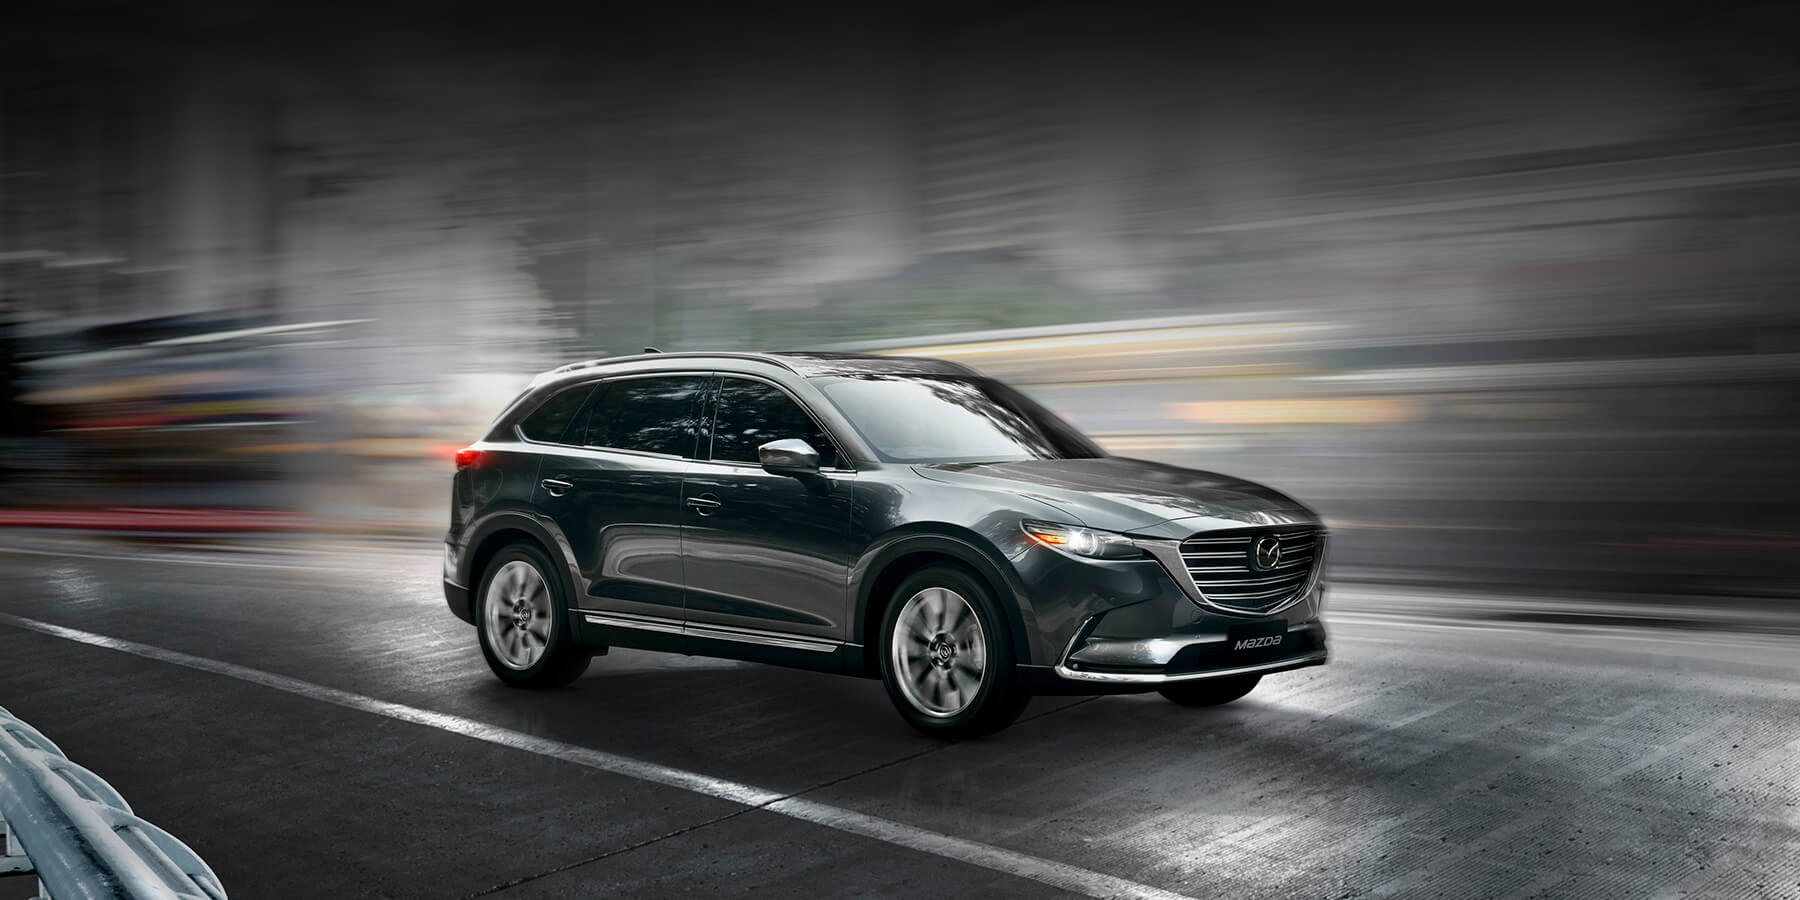 New Mazda CX-9 GTX AWD 2.5L TURBO PLUS IPM